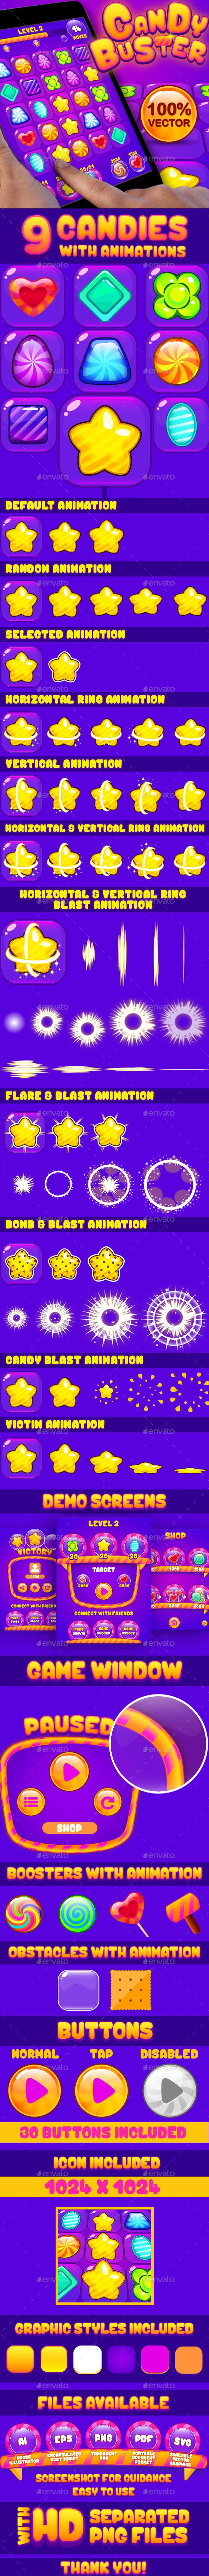 Candy Buster: Match3 Puzzle Game UI Pack — Vector EPS #video #icon • Available here → https://graphicriver.net/item/candy-buster-match3-puzzle-game-ui-pack/14056962?ref=pxcr